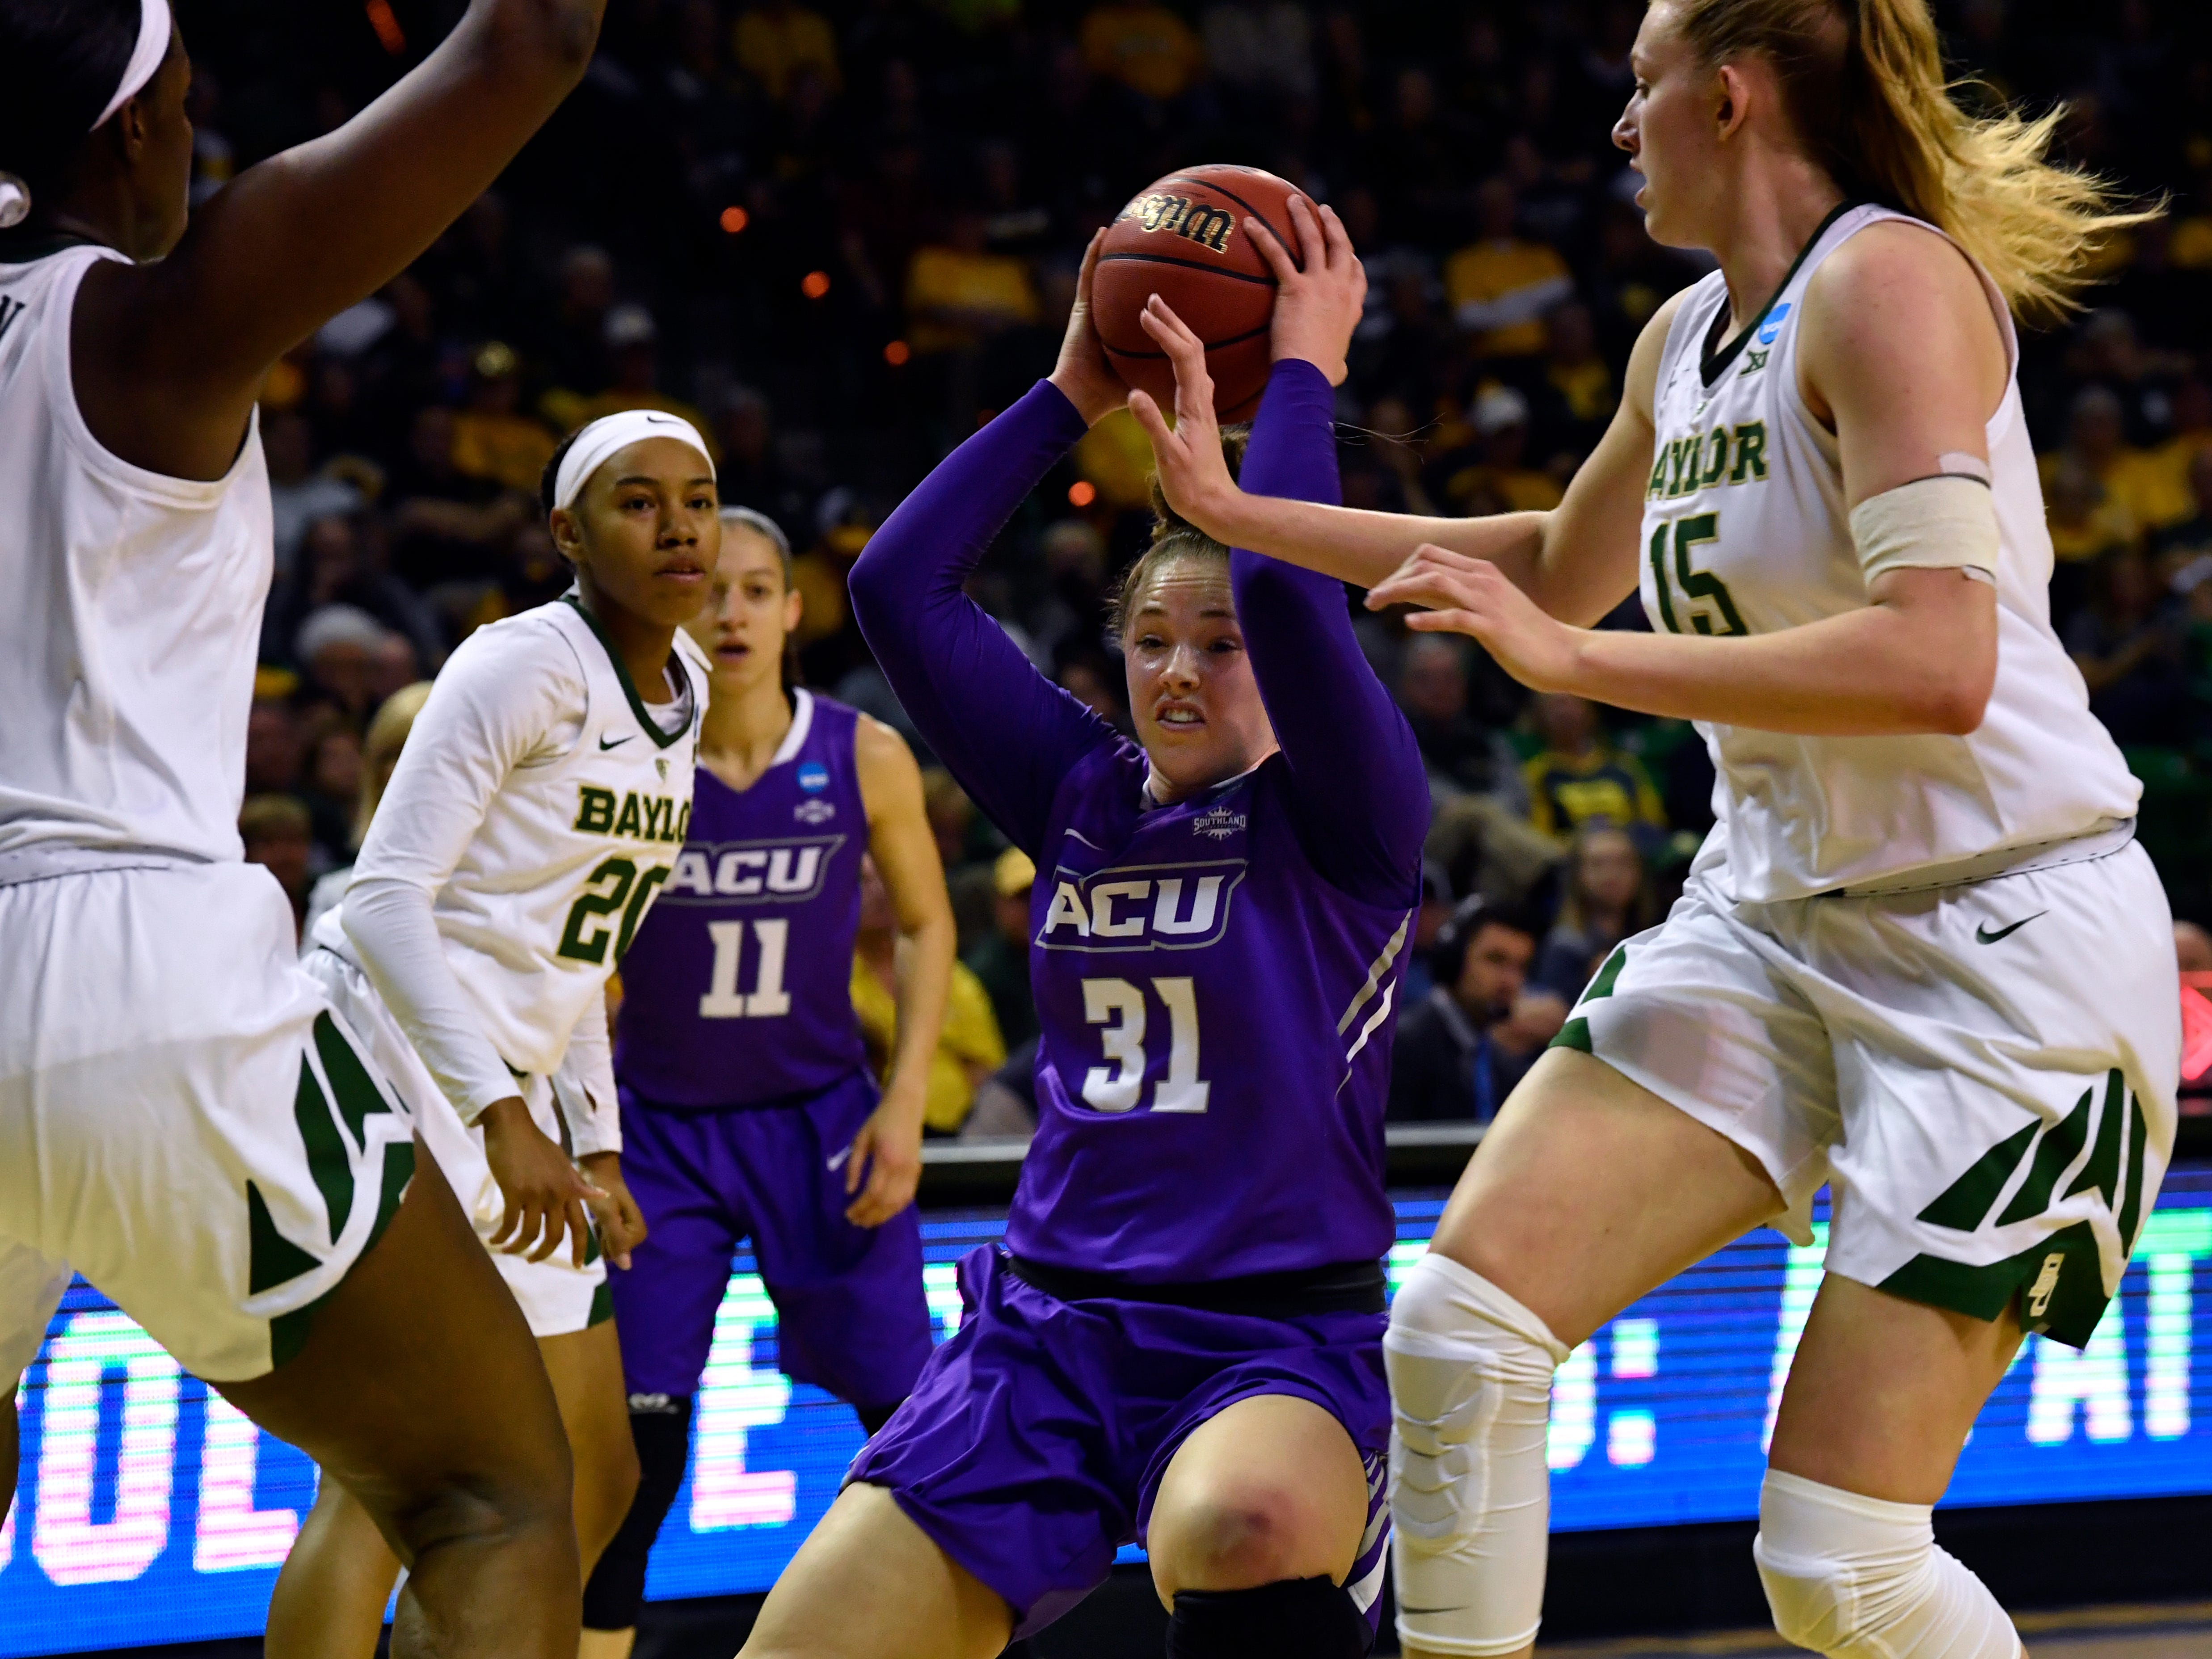 ACU's Madi Miller is surrounded by Baylor Bears during Saturday's NCAA women's Tournament game in Waco March 23, 2019.